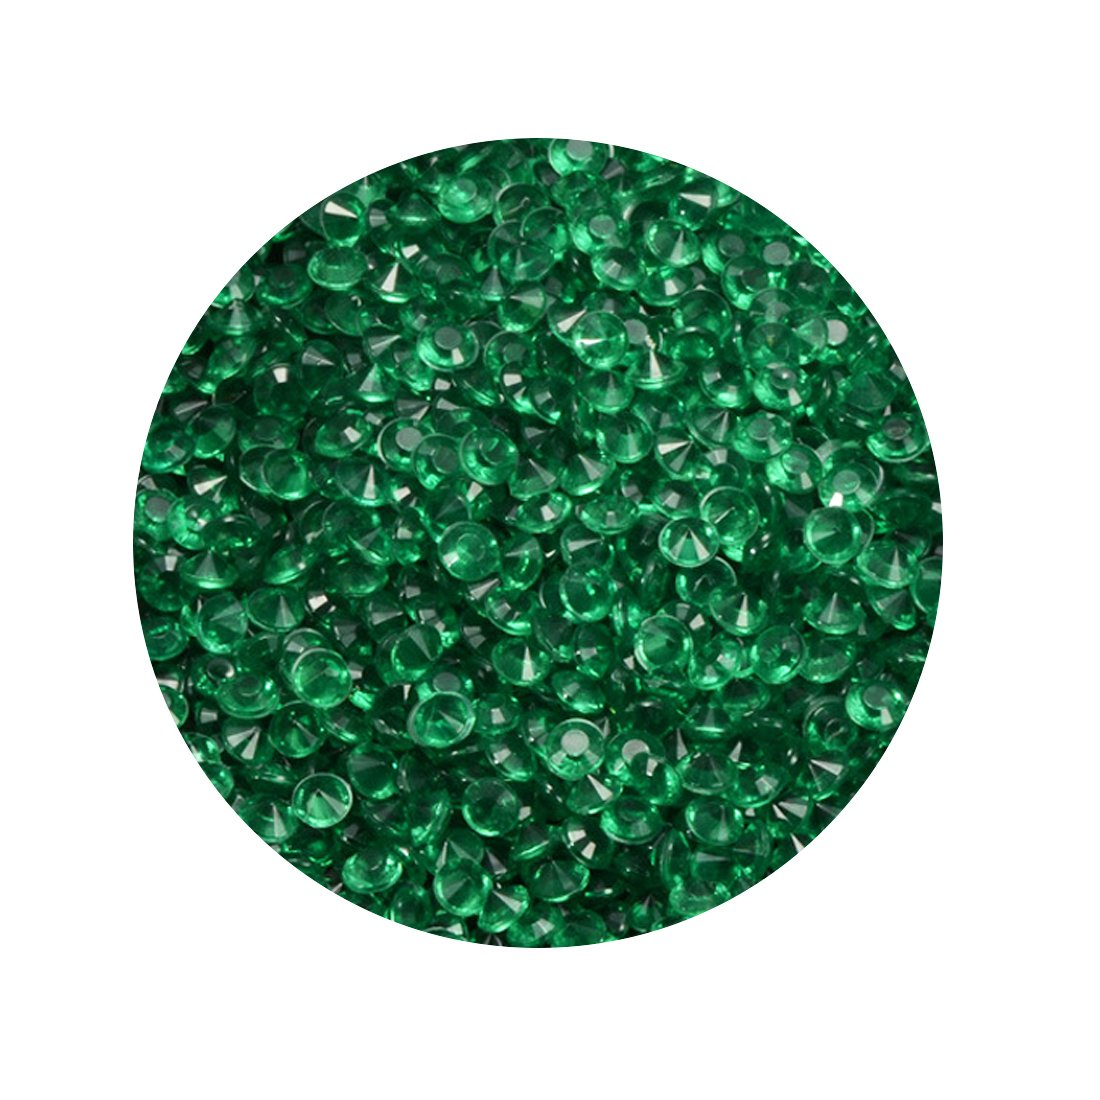 Wedding Decoration Diamond Confetti Table Scatters Acrylic Crystals 1000PCS Dark green